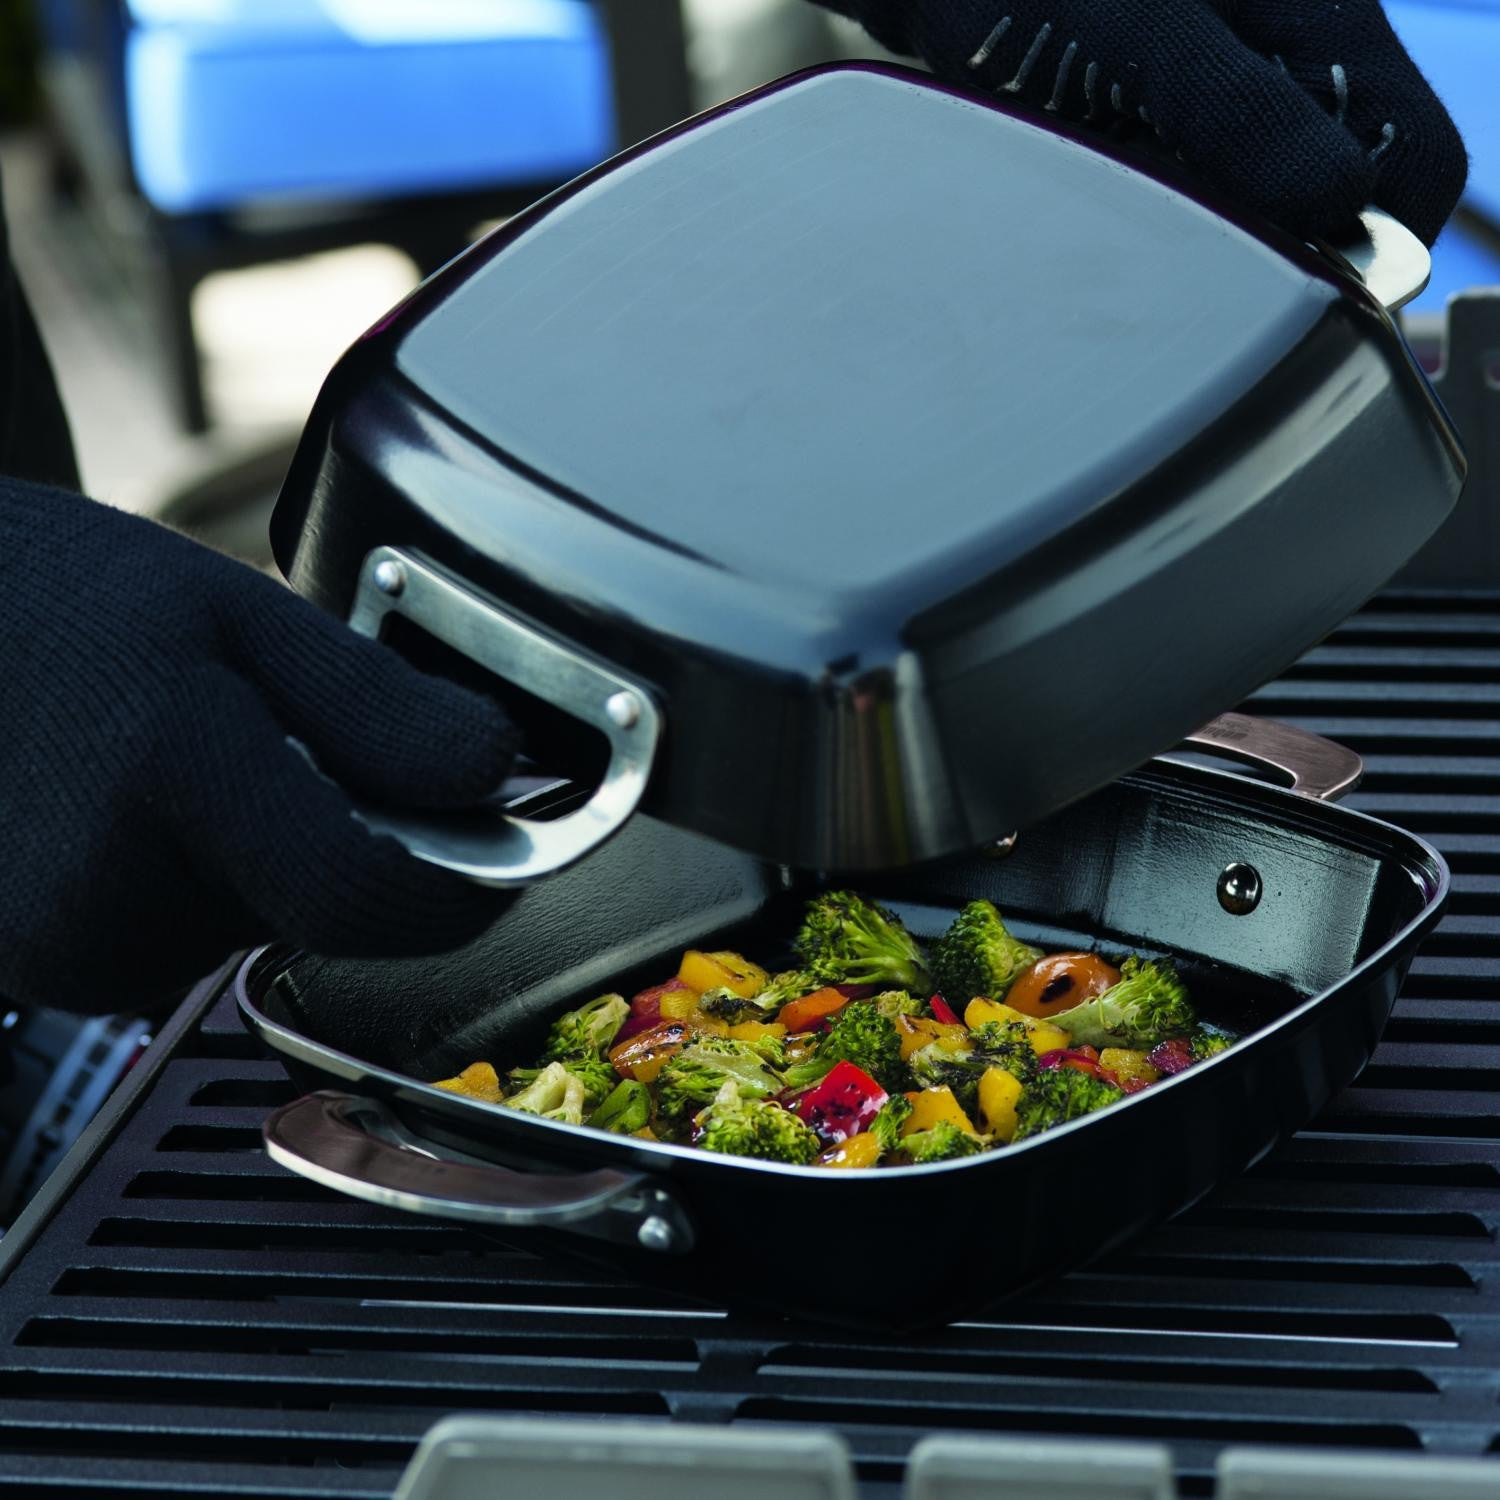 Weber 6732 Deluxe Ceramic-Coated Grill Pan Set - 2-Pieces